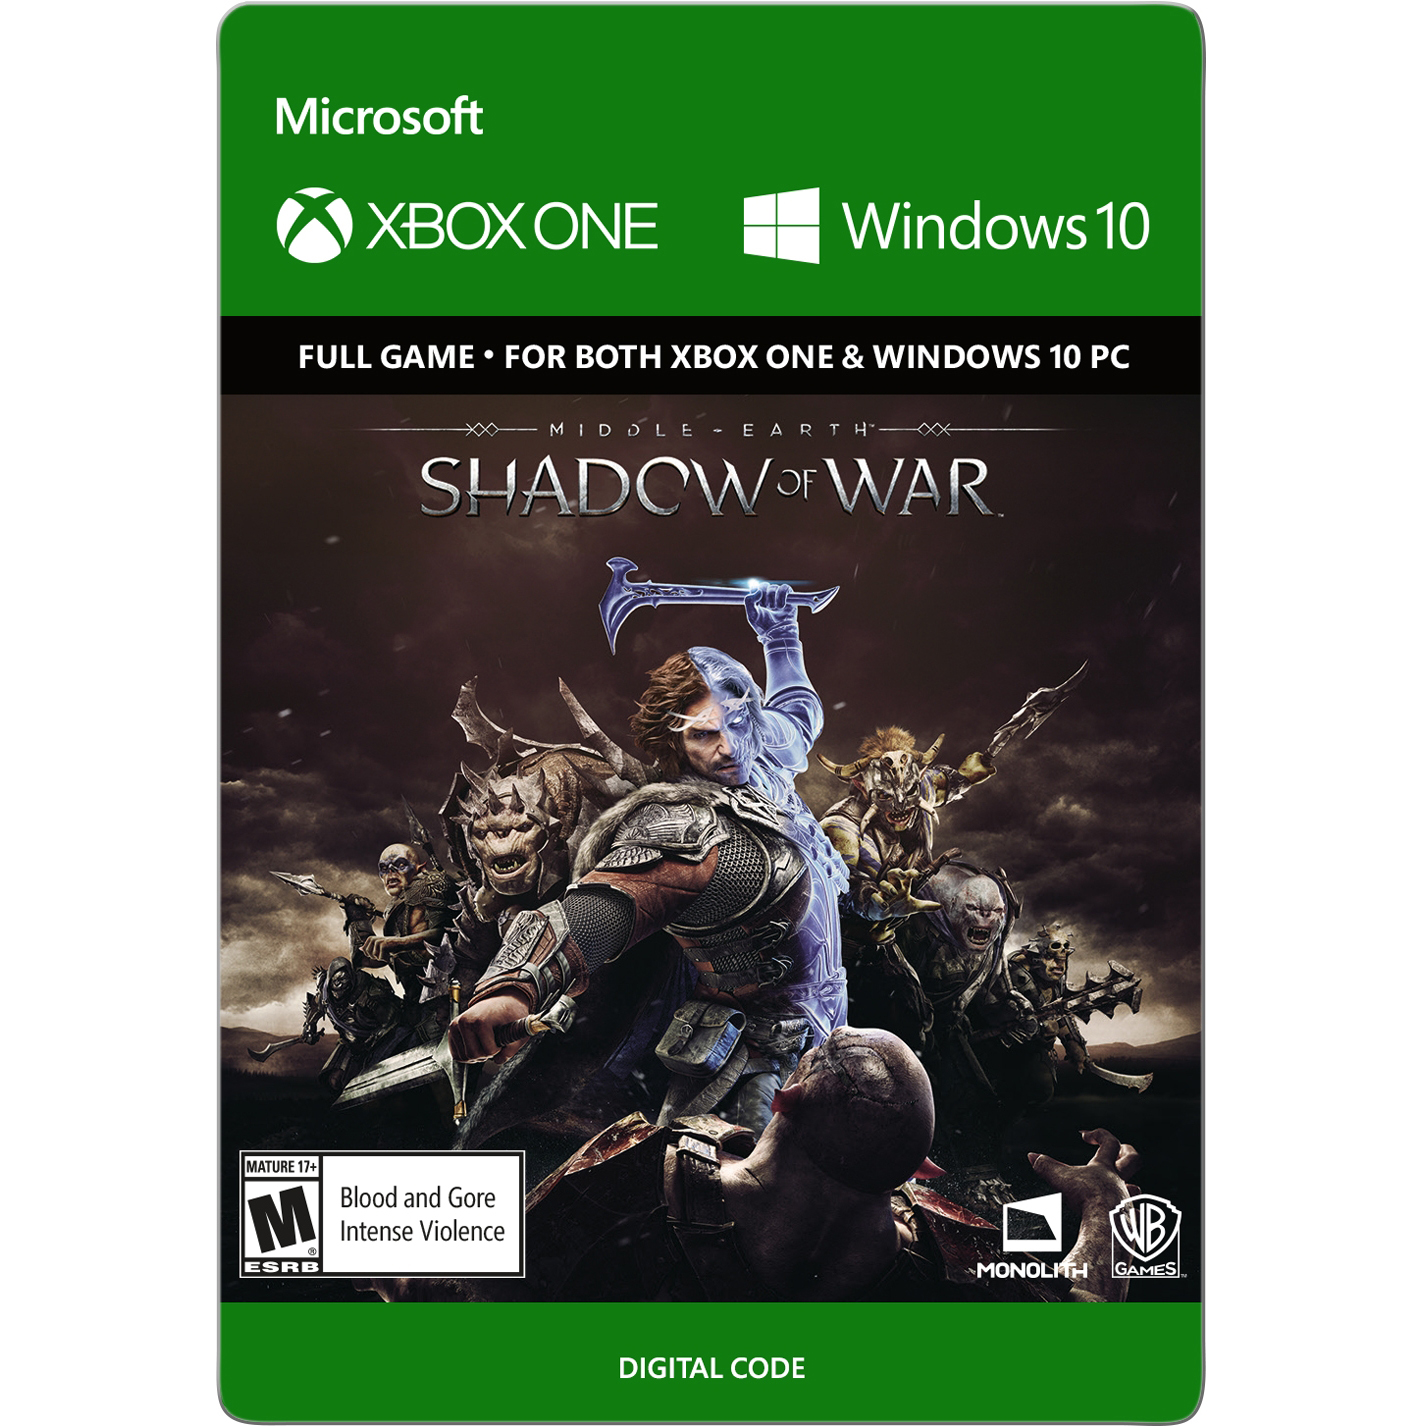 Middle-Earth: Shadow of War, Warner Brothers, Xbox One, [Digital Download], 799366473114